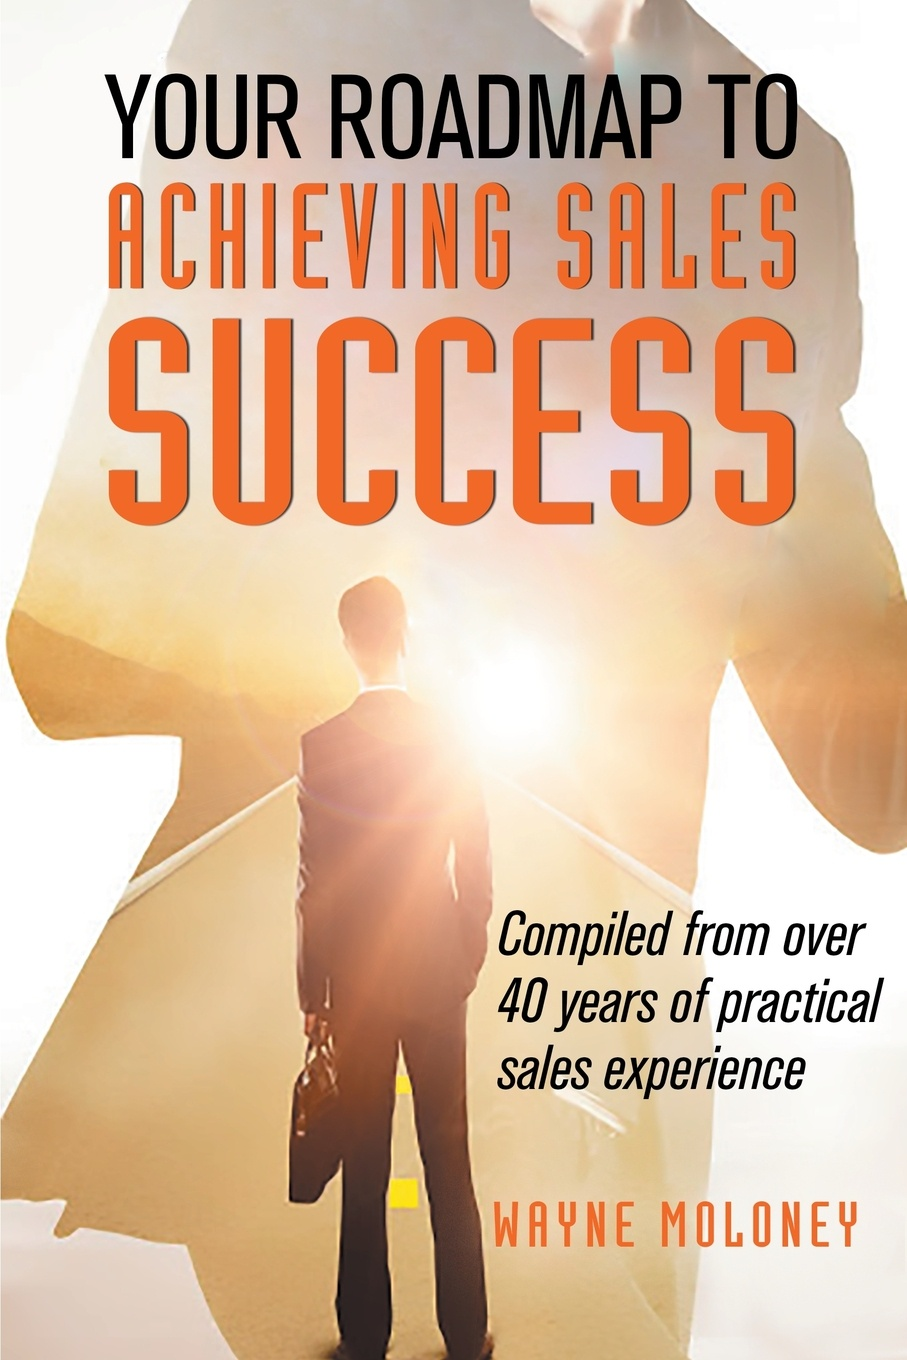 Your Roadmap to Achieving Sales Success Your Roadmap to Achieving Sales Success is a practical, no-nonsense...